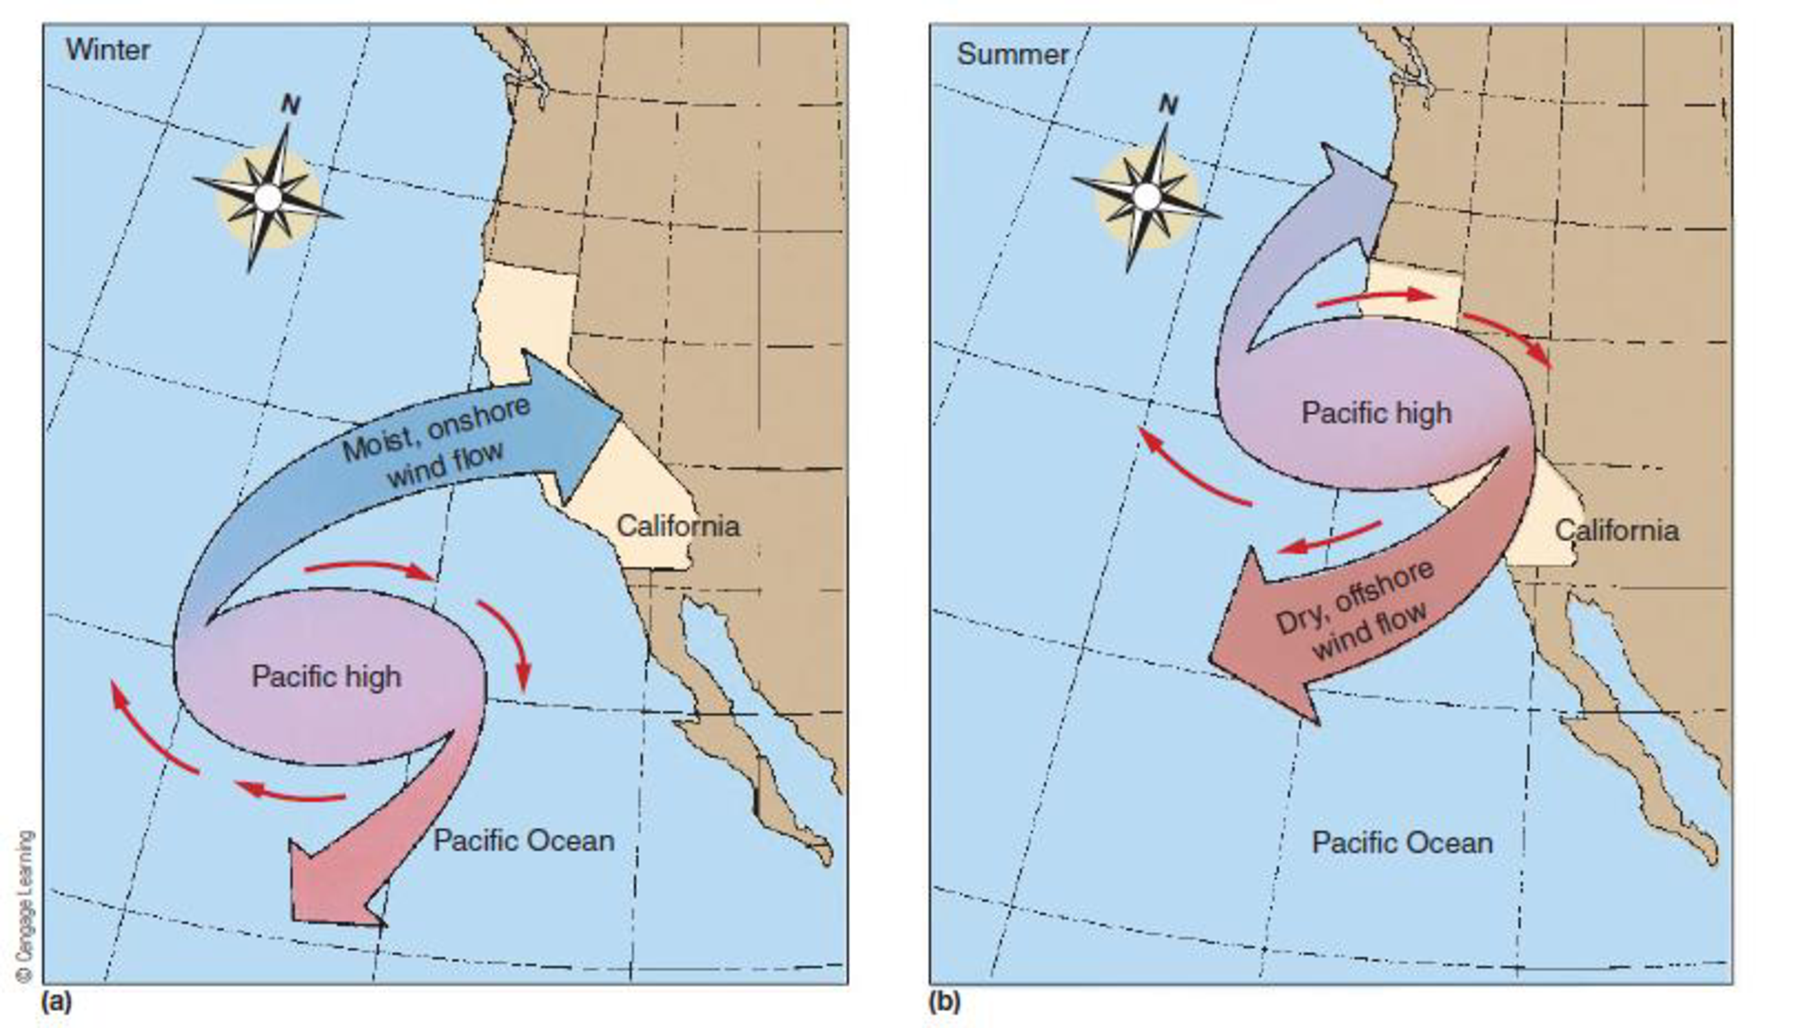 Chapter 4, Problem 12FQ, In what ways would the seasonal migration of the Pacific anticyclone affect agriculture in